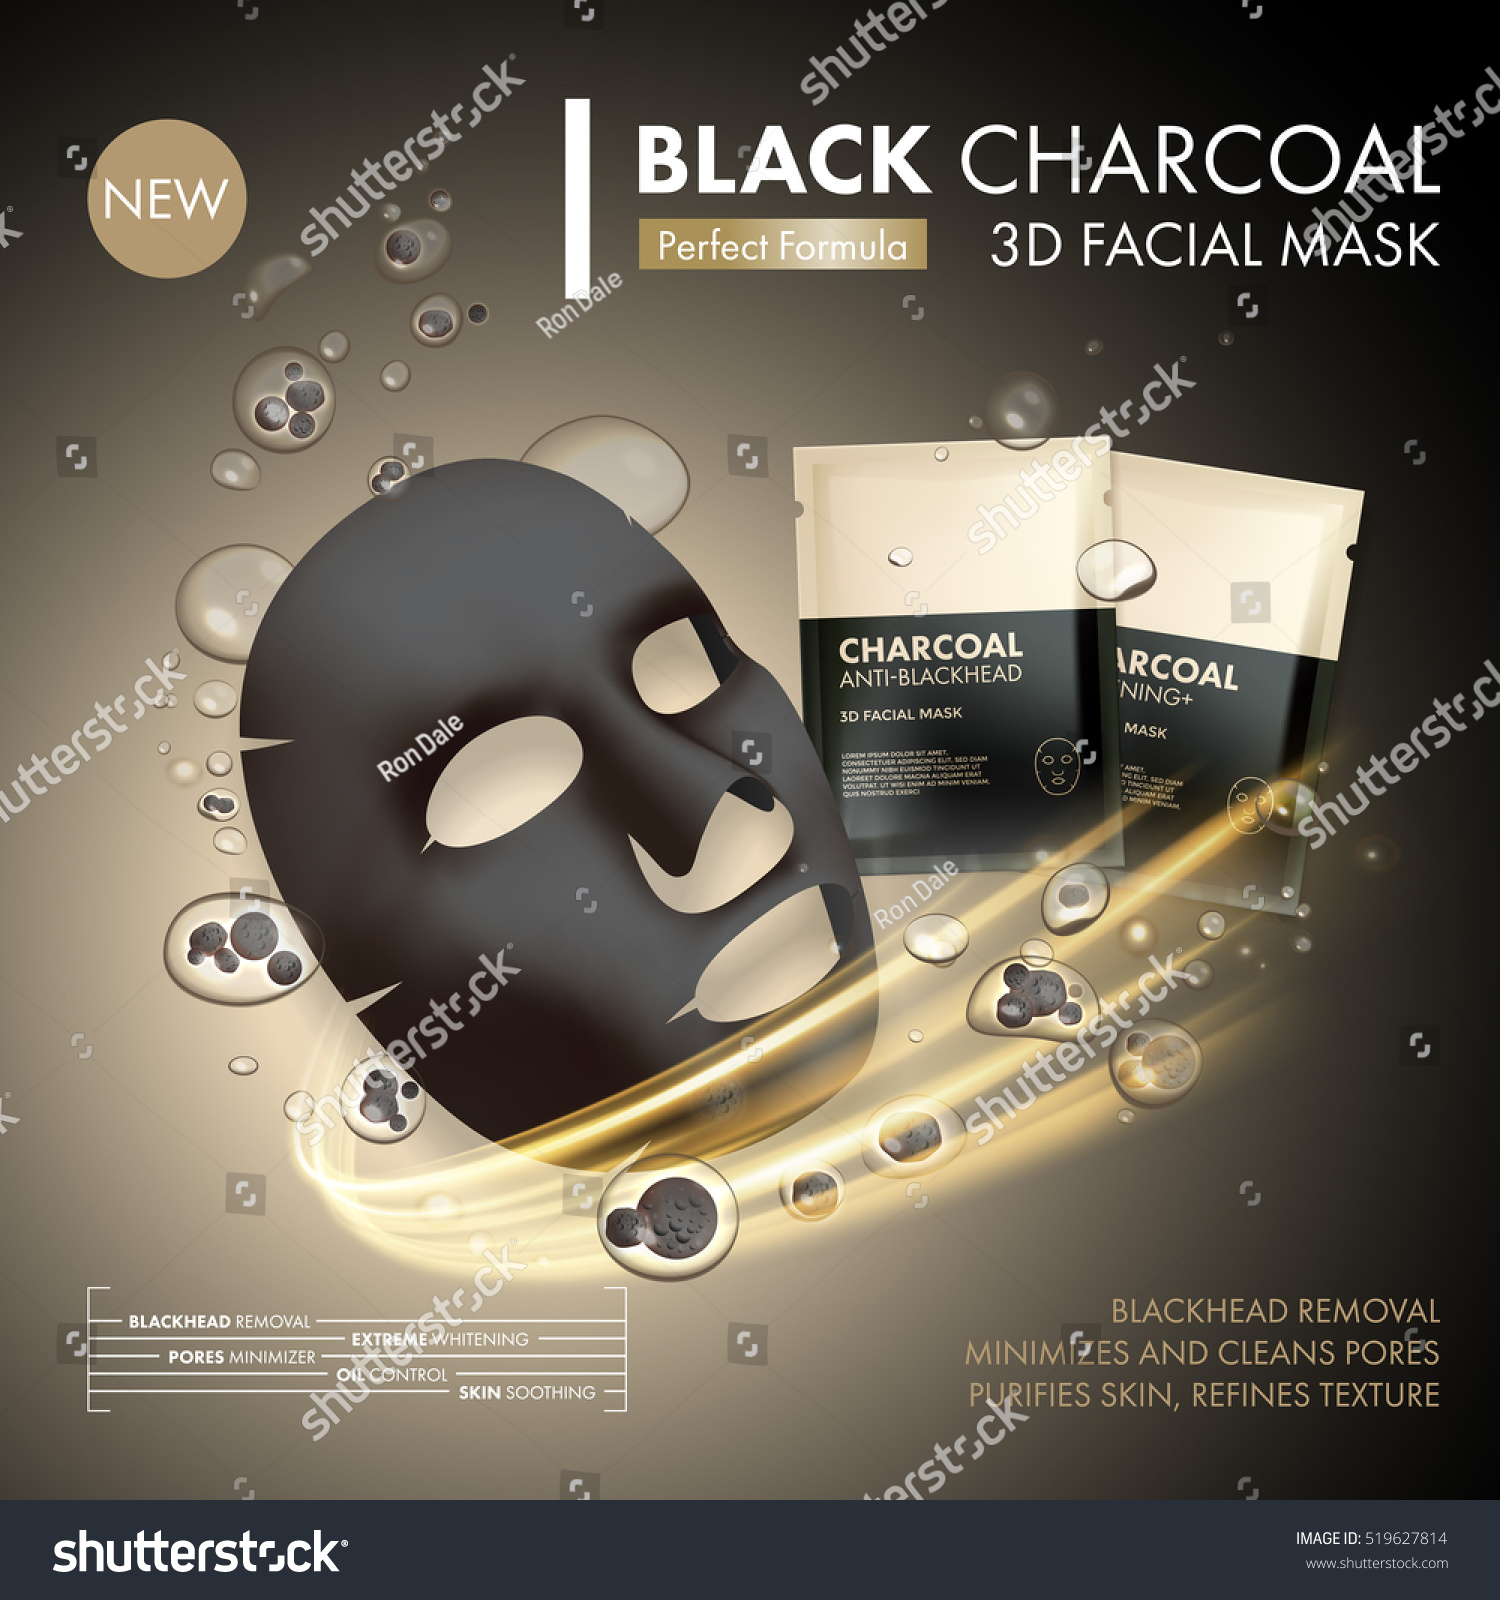 how to make blackhead mask with charcoal and glue